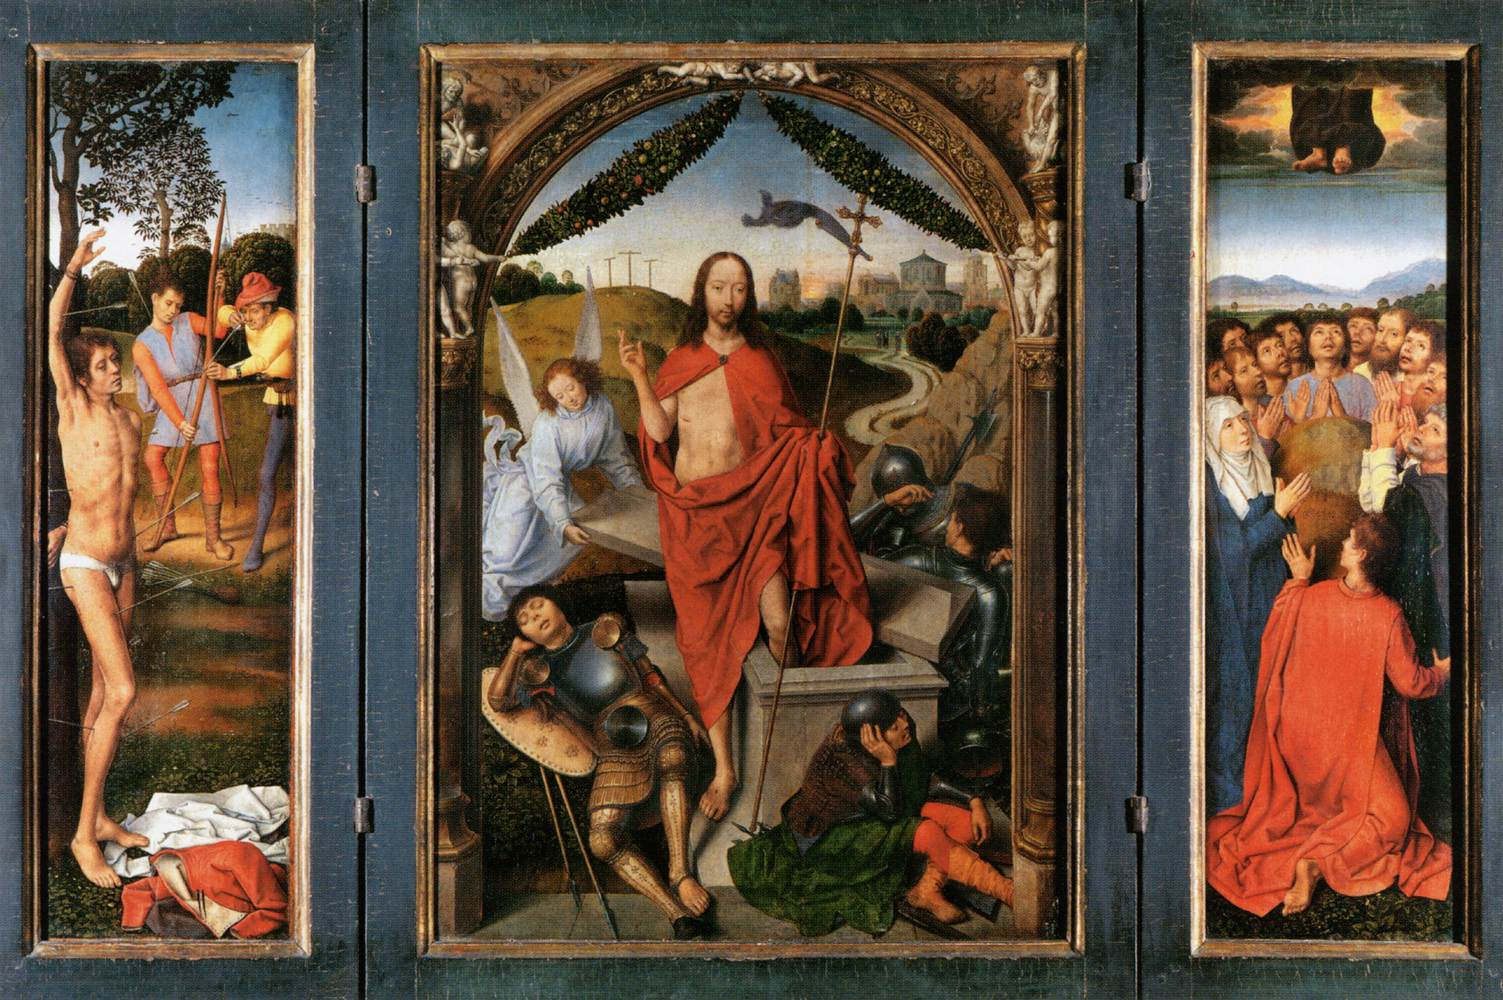 Hans_Memling_-_Triptych_of_the_Resurrection_-_WGA14986-WIKIMEDIA